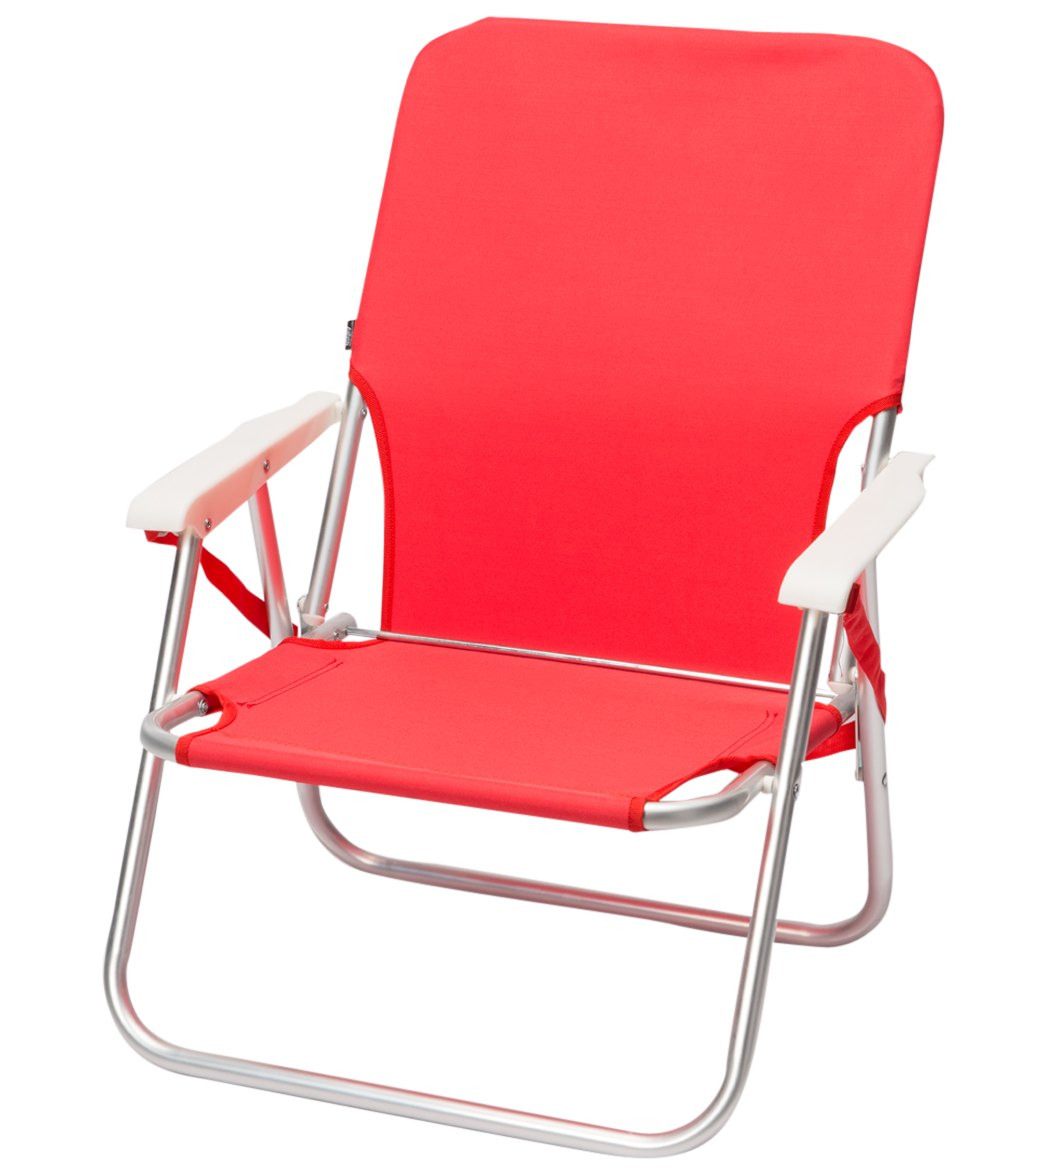 Red Sling Strap Beach Chair Share